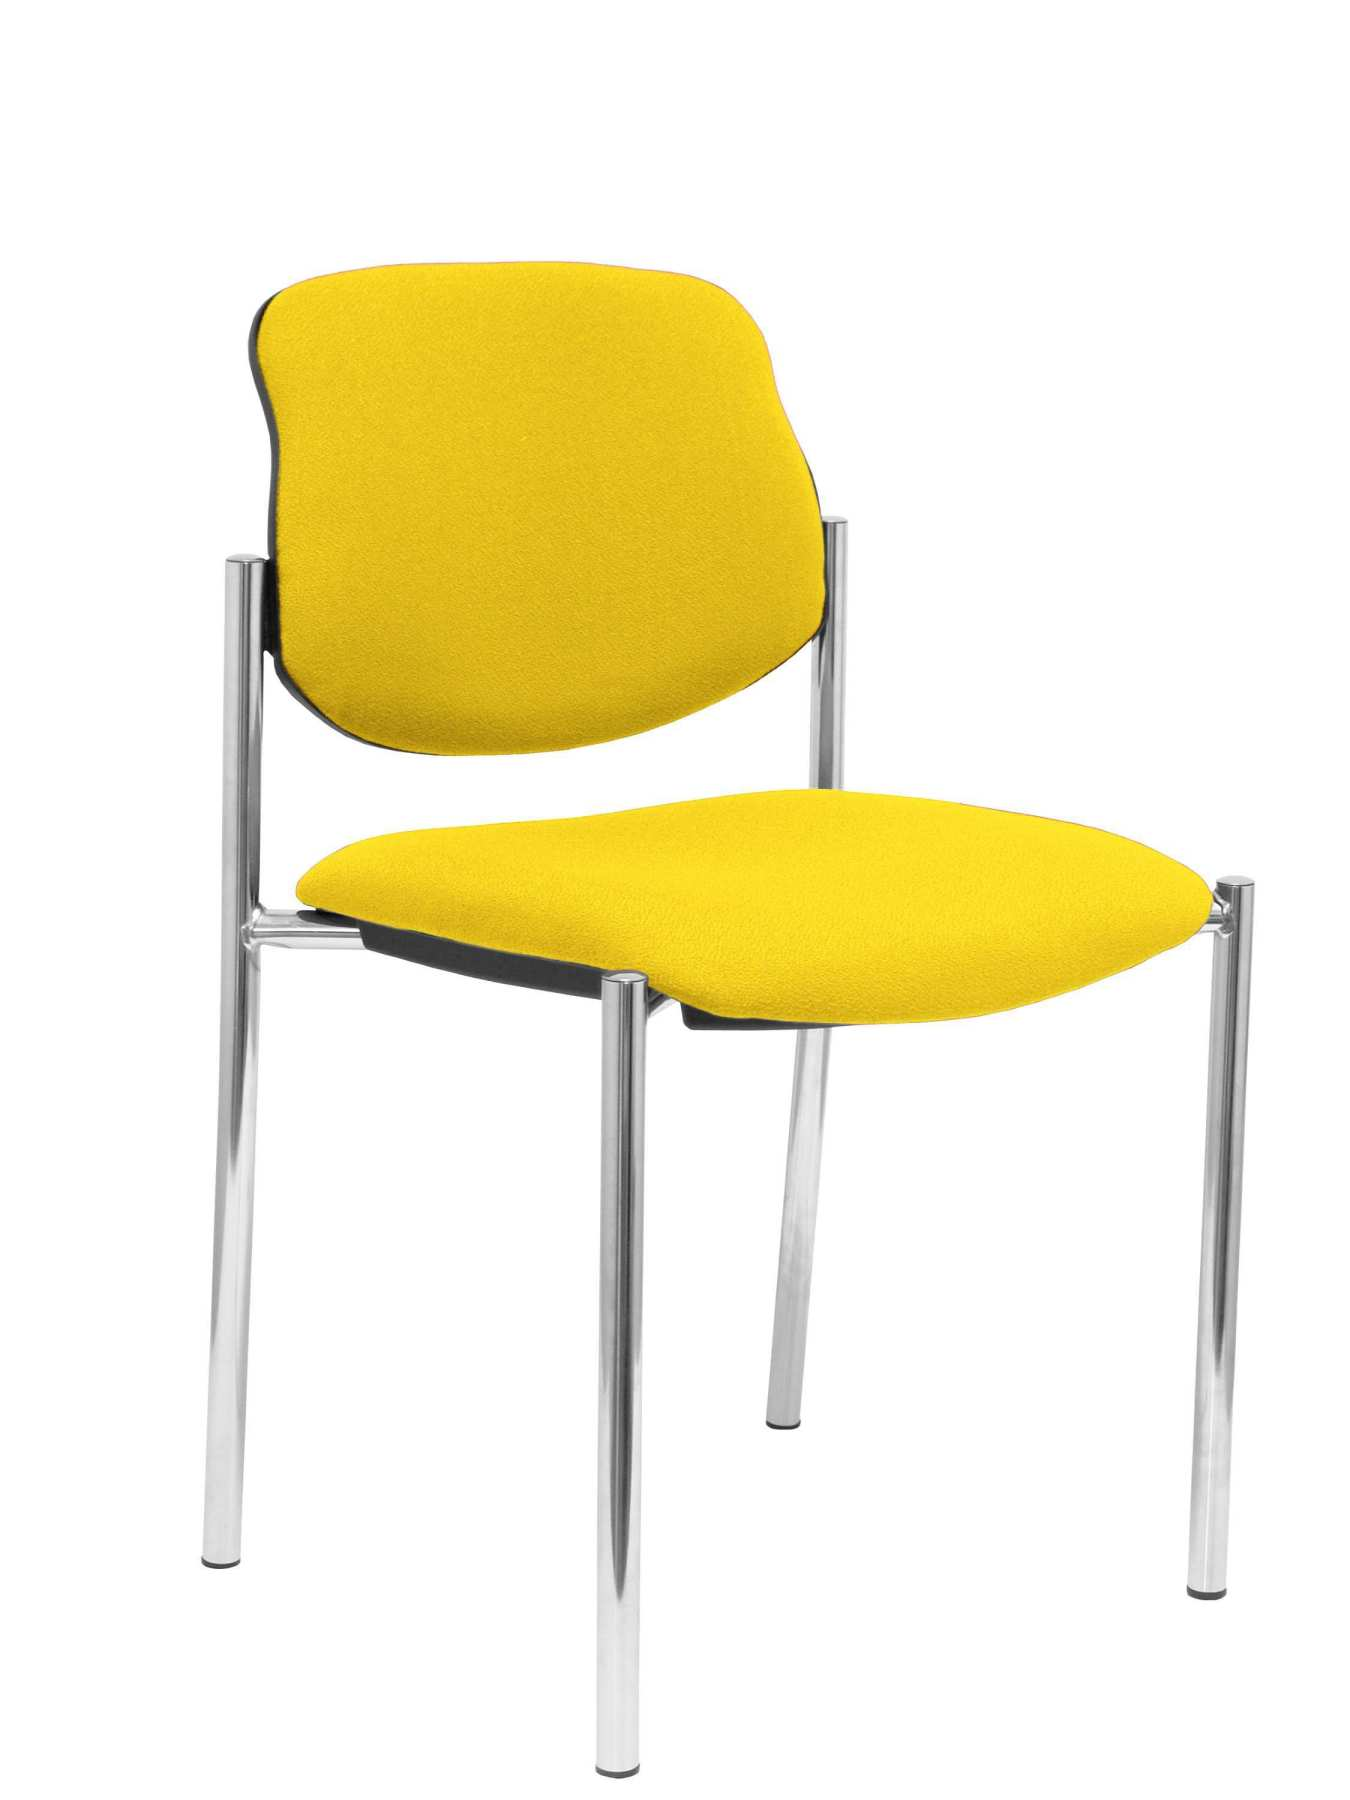 Confident Chair 4-leg And Estructrua Chrome Seat And Back Upholstered In Fabric BALI Yellow PIQUERAS And